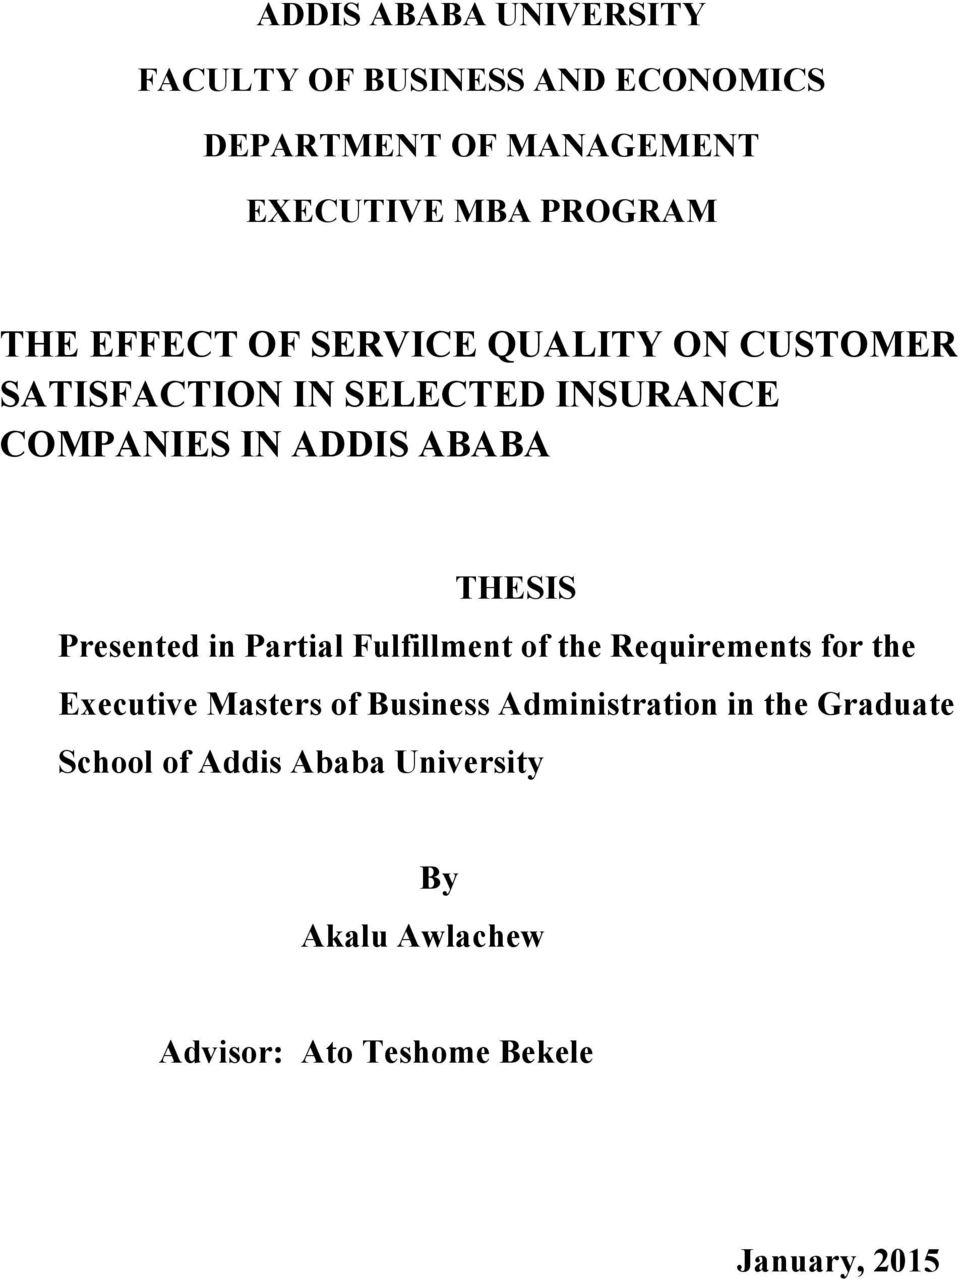 thesis on customer satisfaction in telecommunication an assessment of service quality on customer satisfaction a case essays and papers